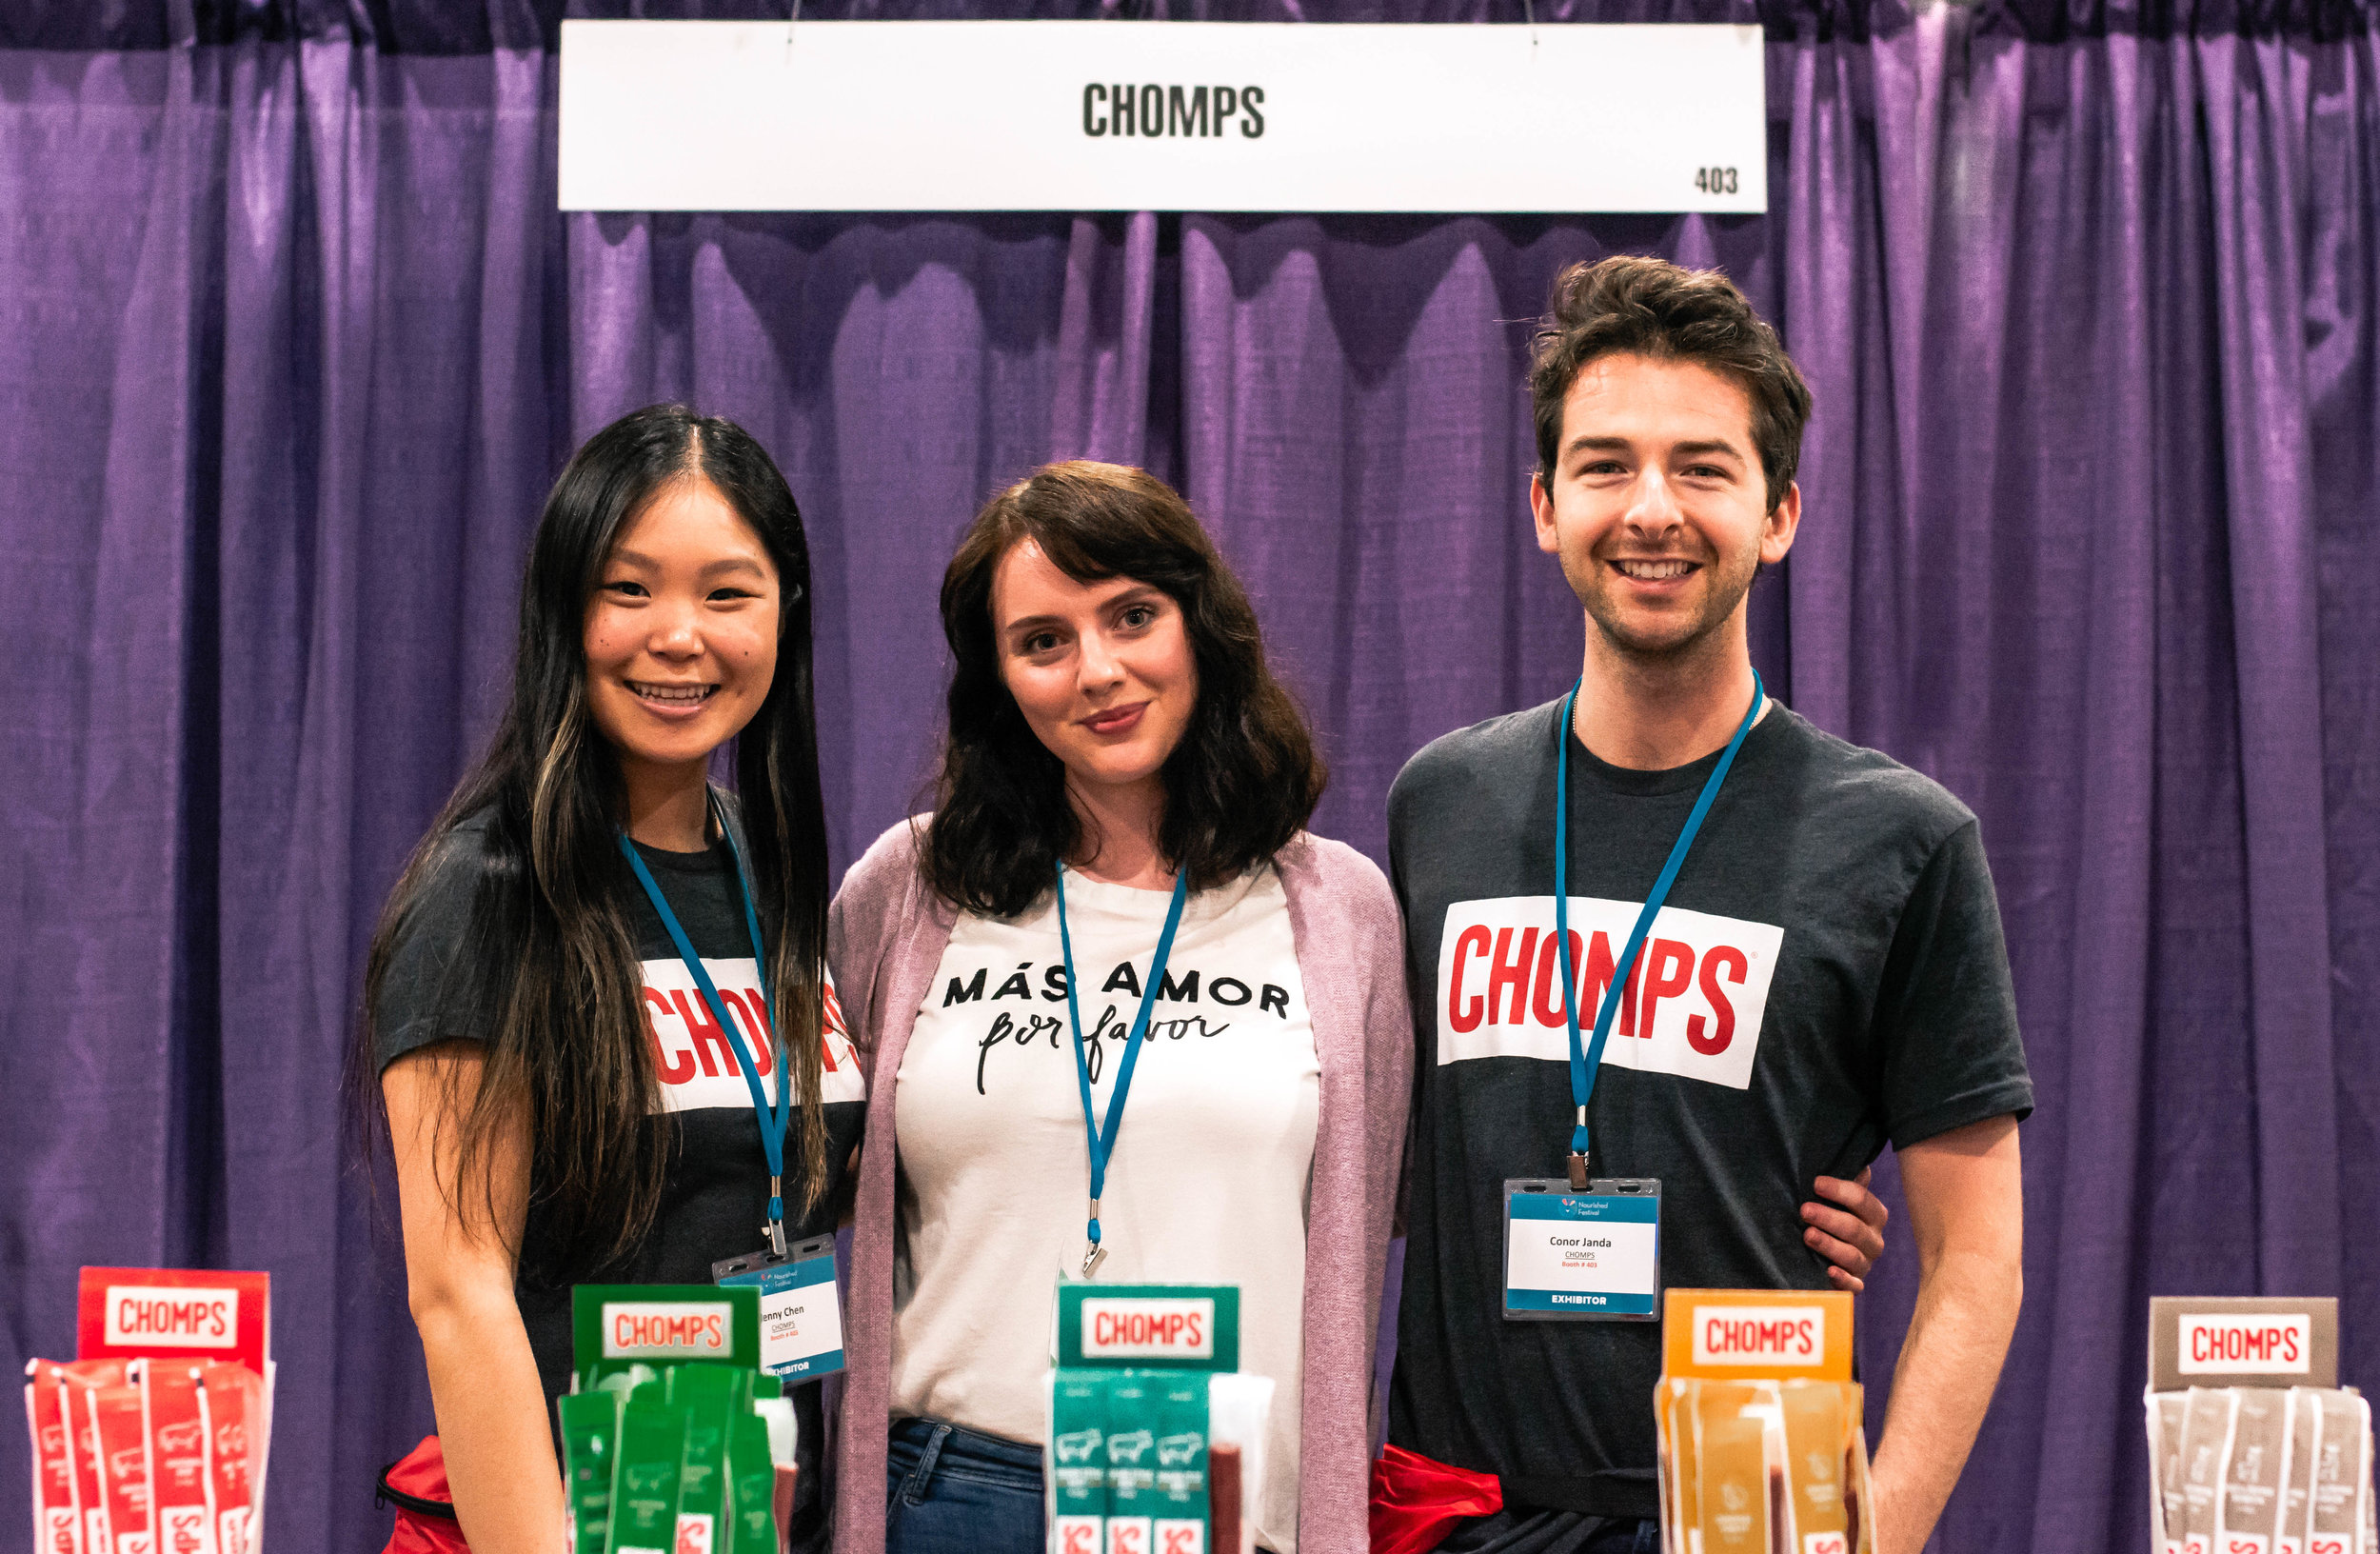 Macaila Britton and the CHOMPS team at the Chicago Nourish Festival